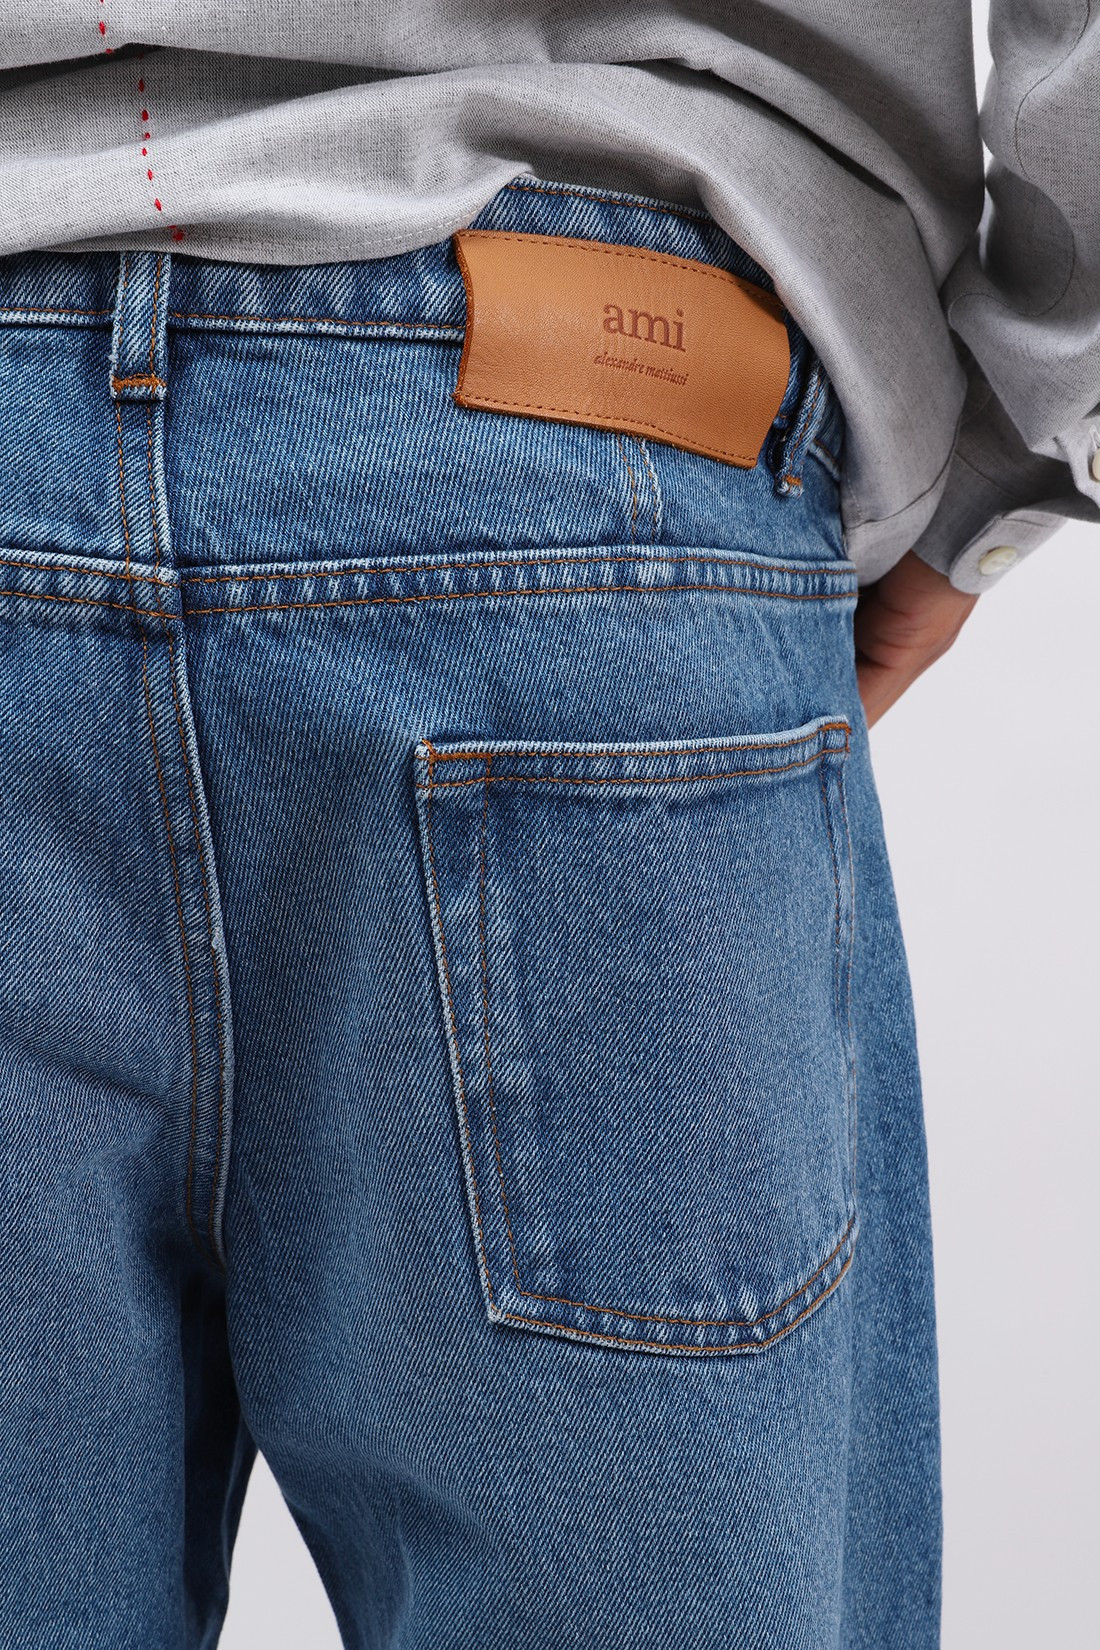 AMI / Jean tapered fit Bleu used